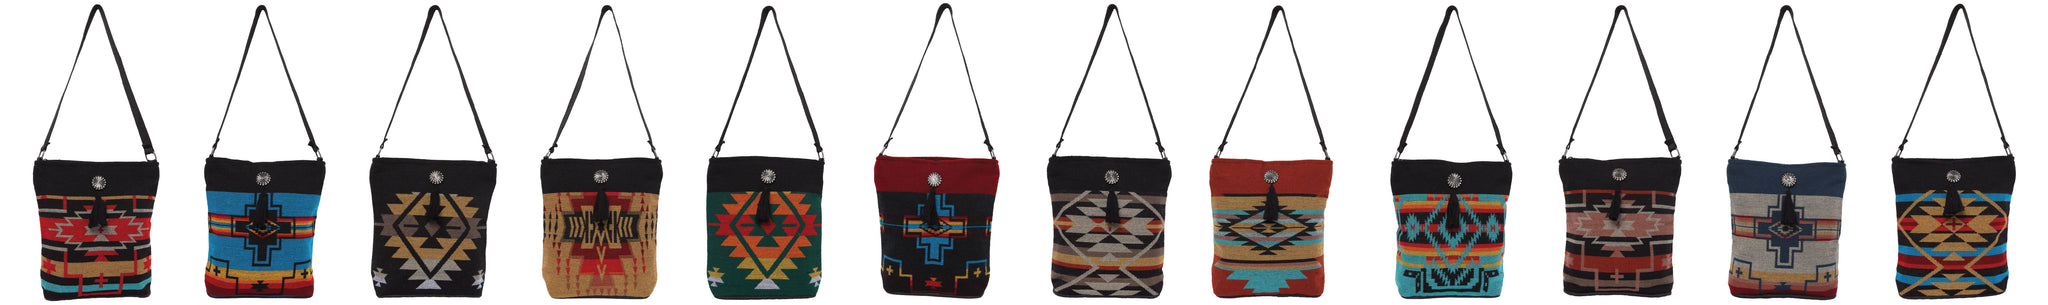 Southwest Geometric Design Concho Handbags